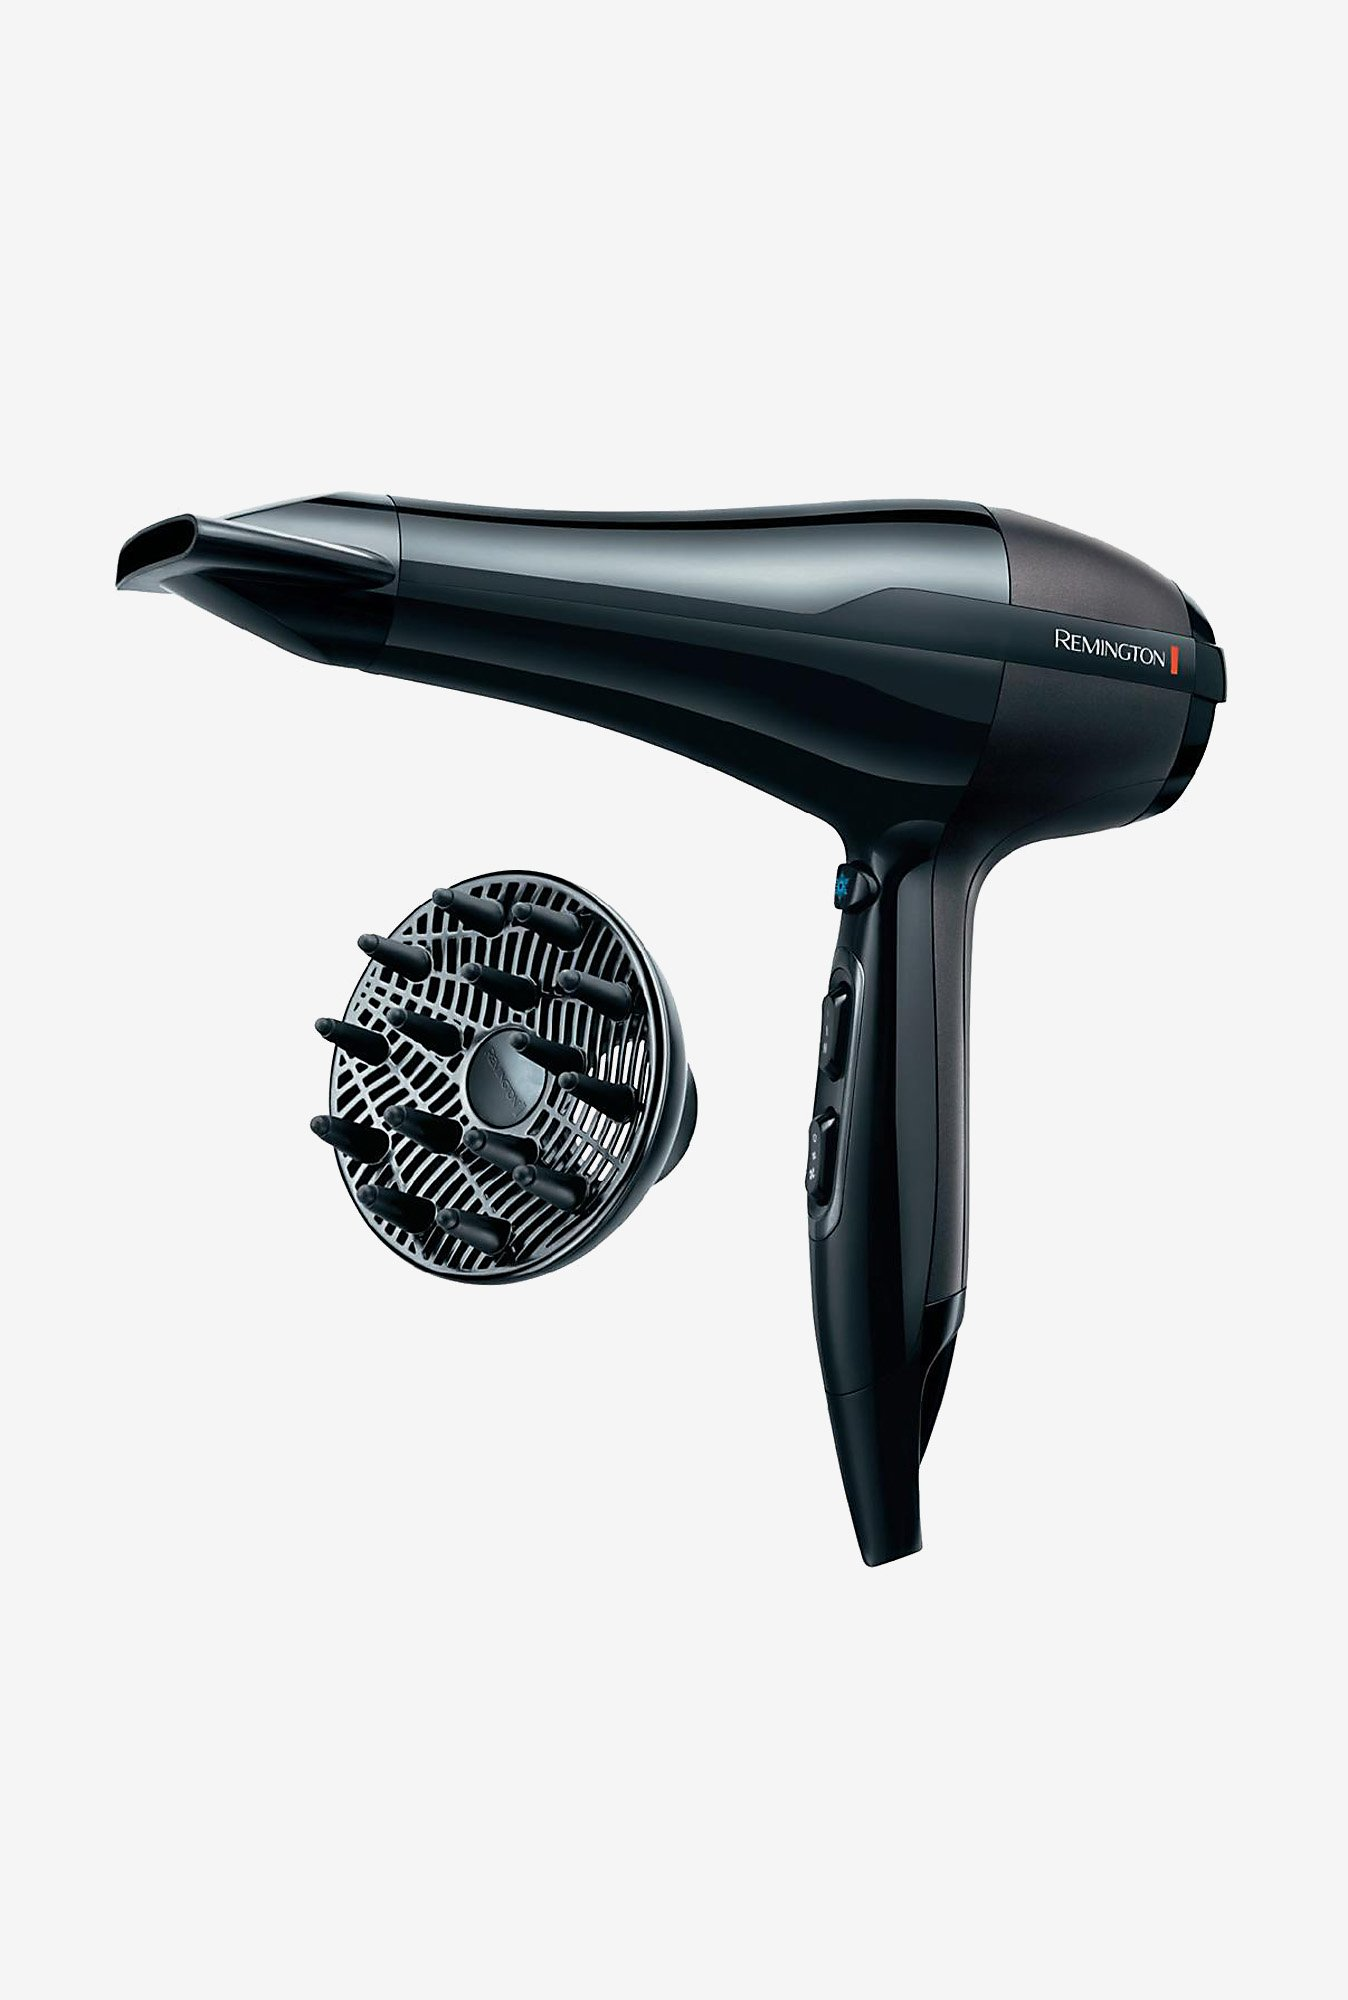 Remington PRO Air AC Ac5999 2300 Watt Hair Dryer (Black)